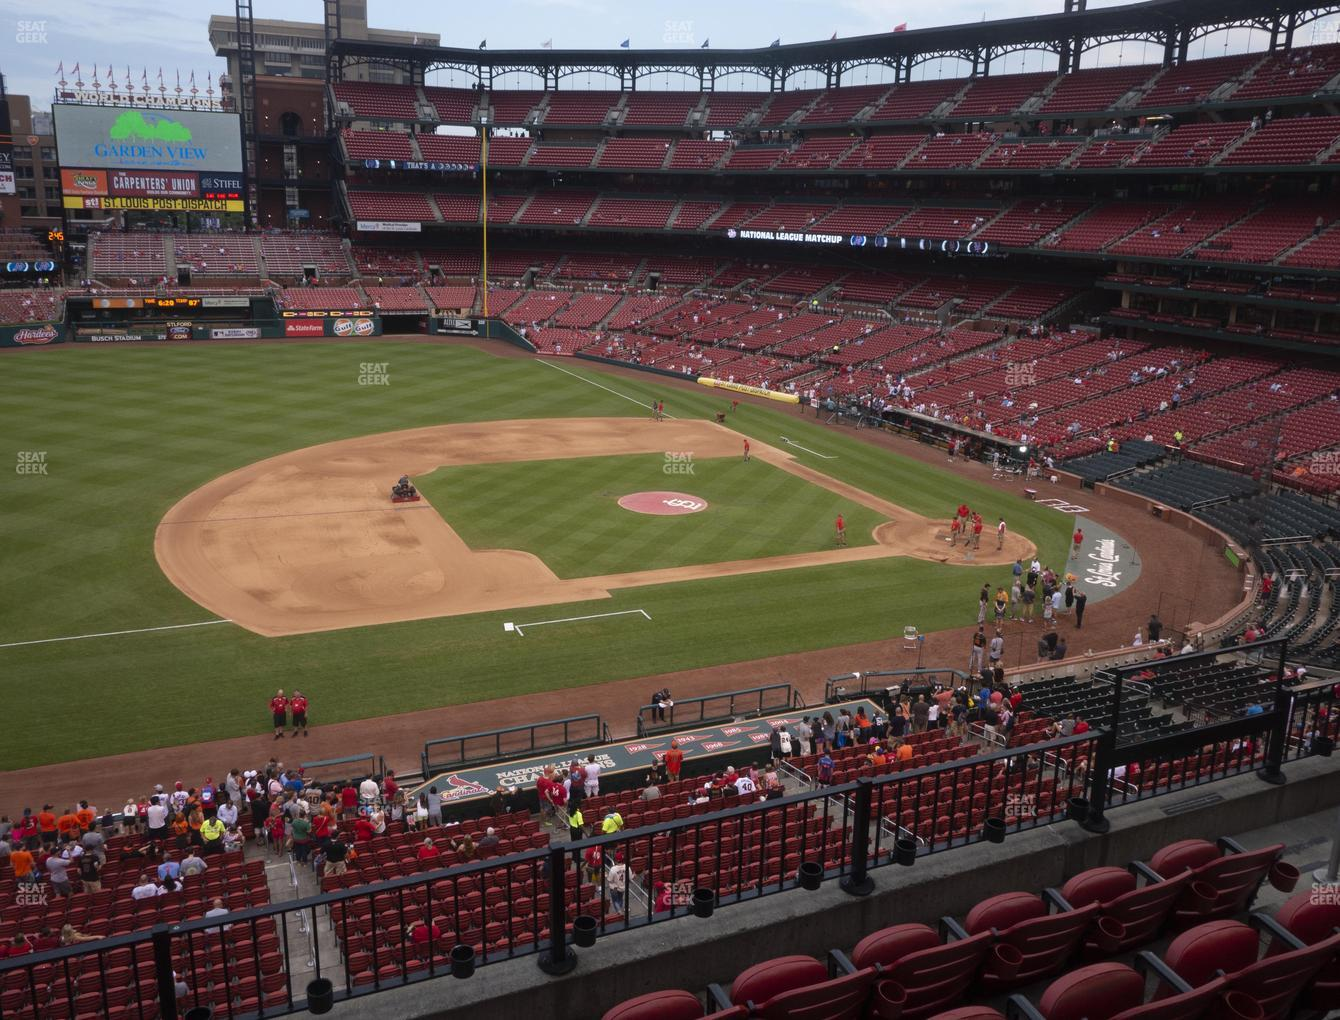 St. Louis Cardinals at Busch Stadium National Car Rental Club 258 View